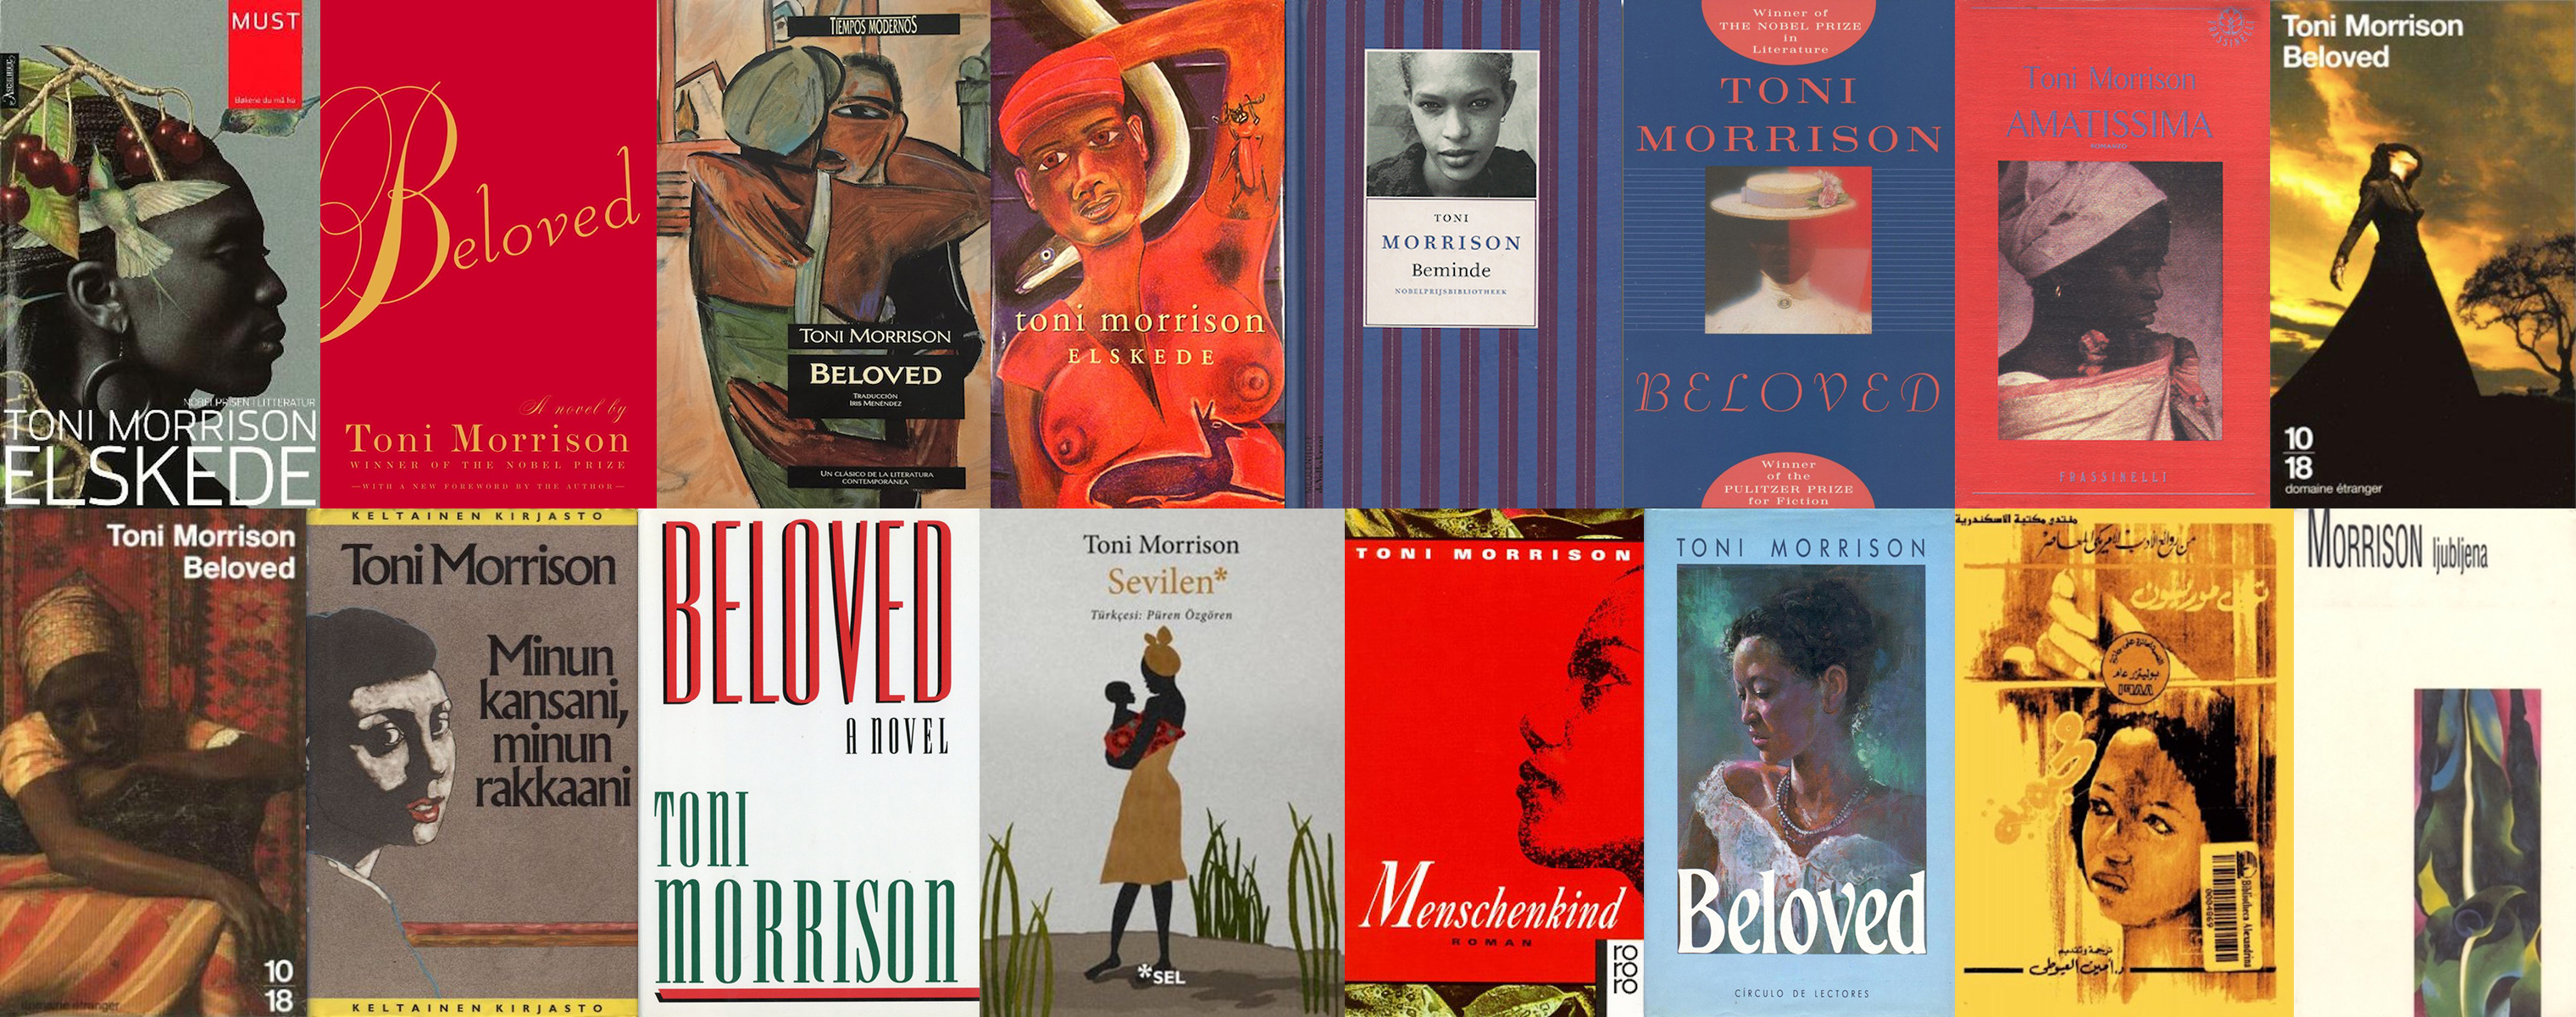 75 Covers of Toni Morrison's Beloved From Around the World